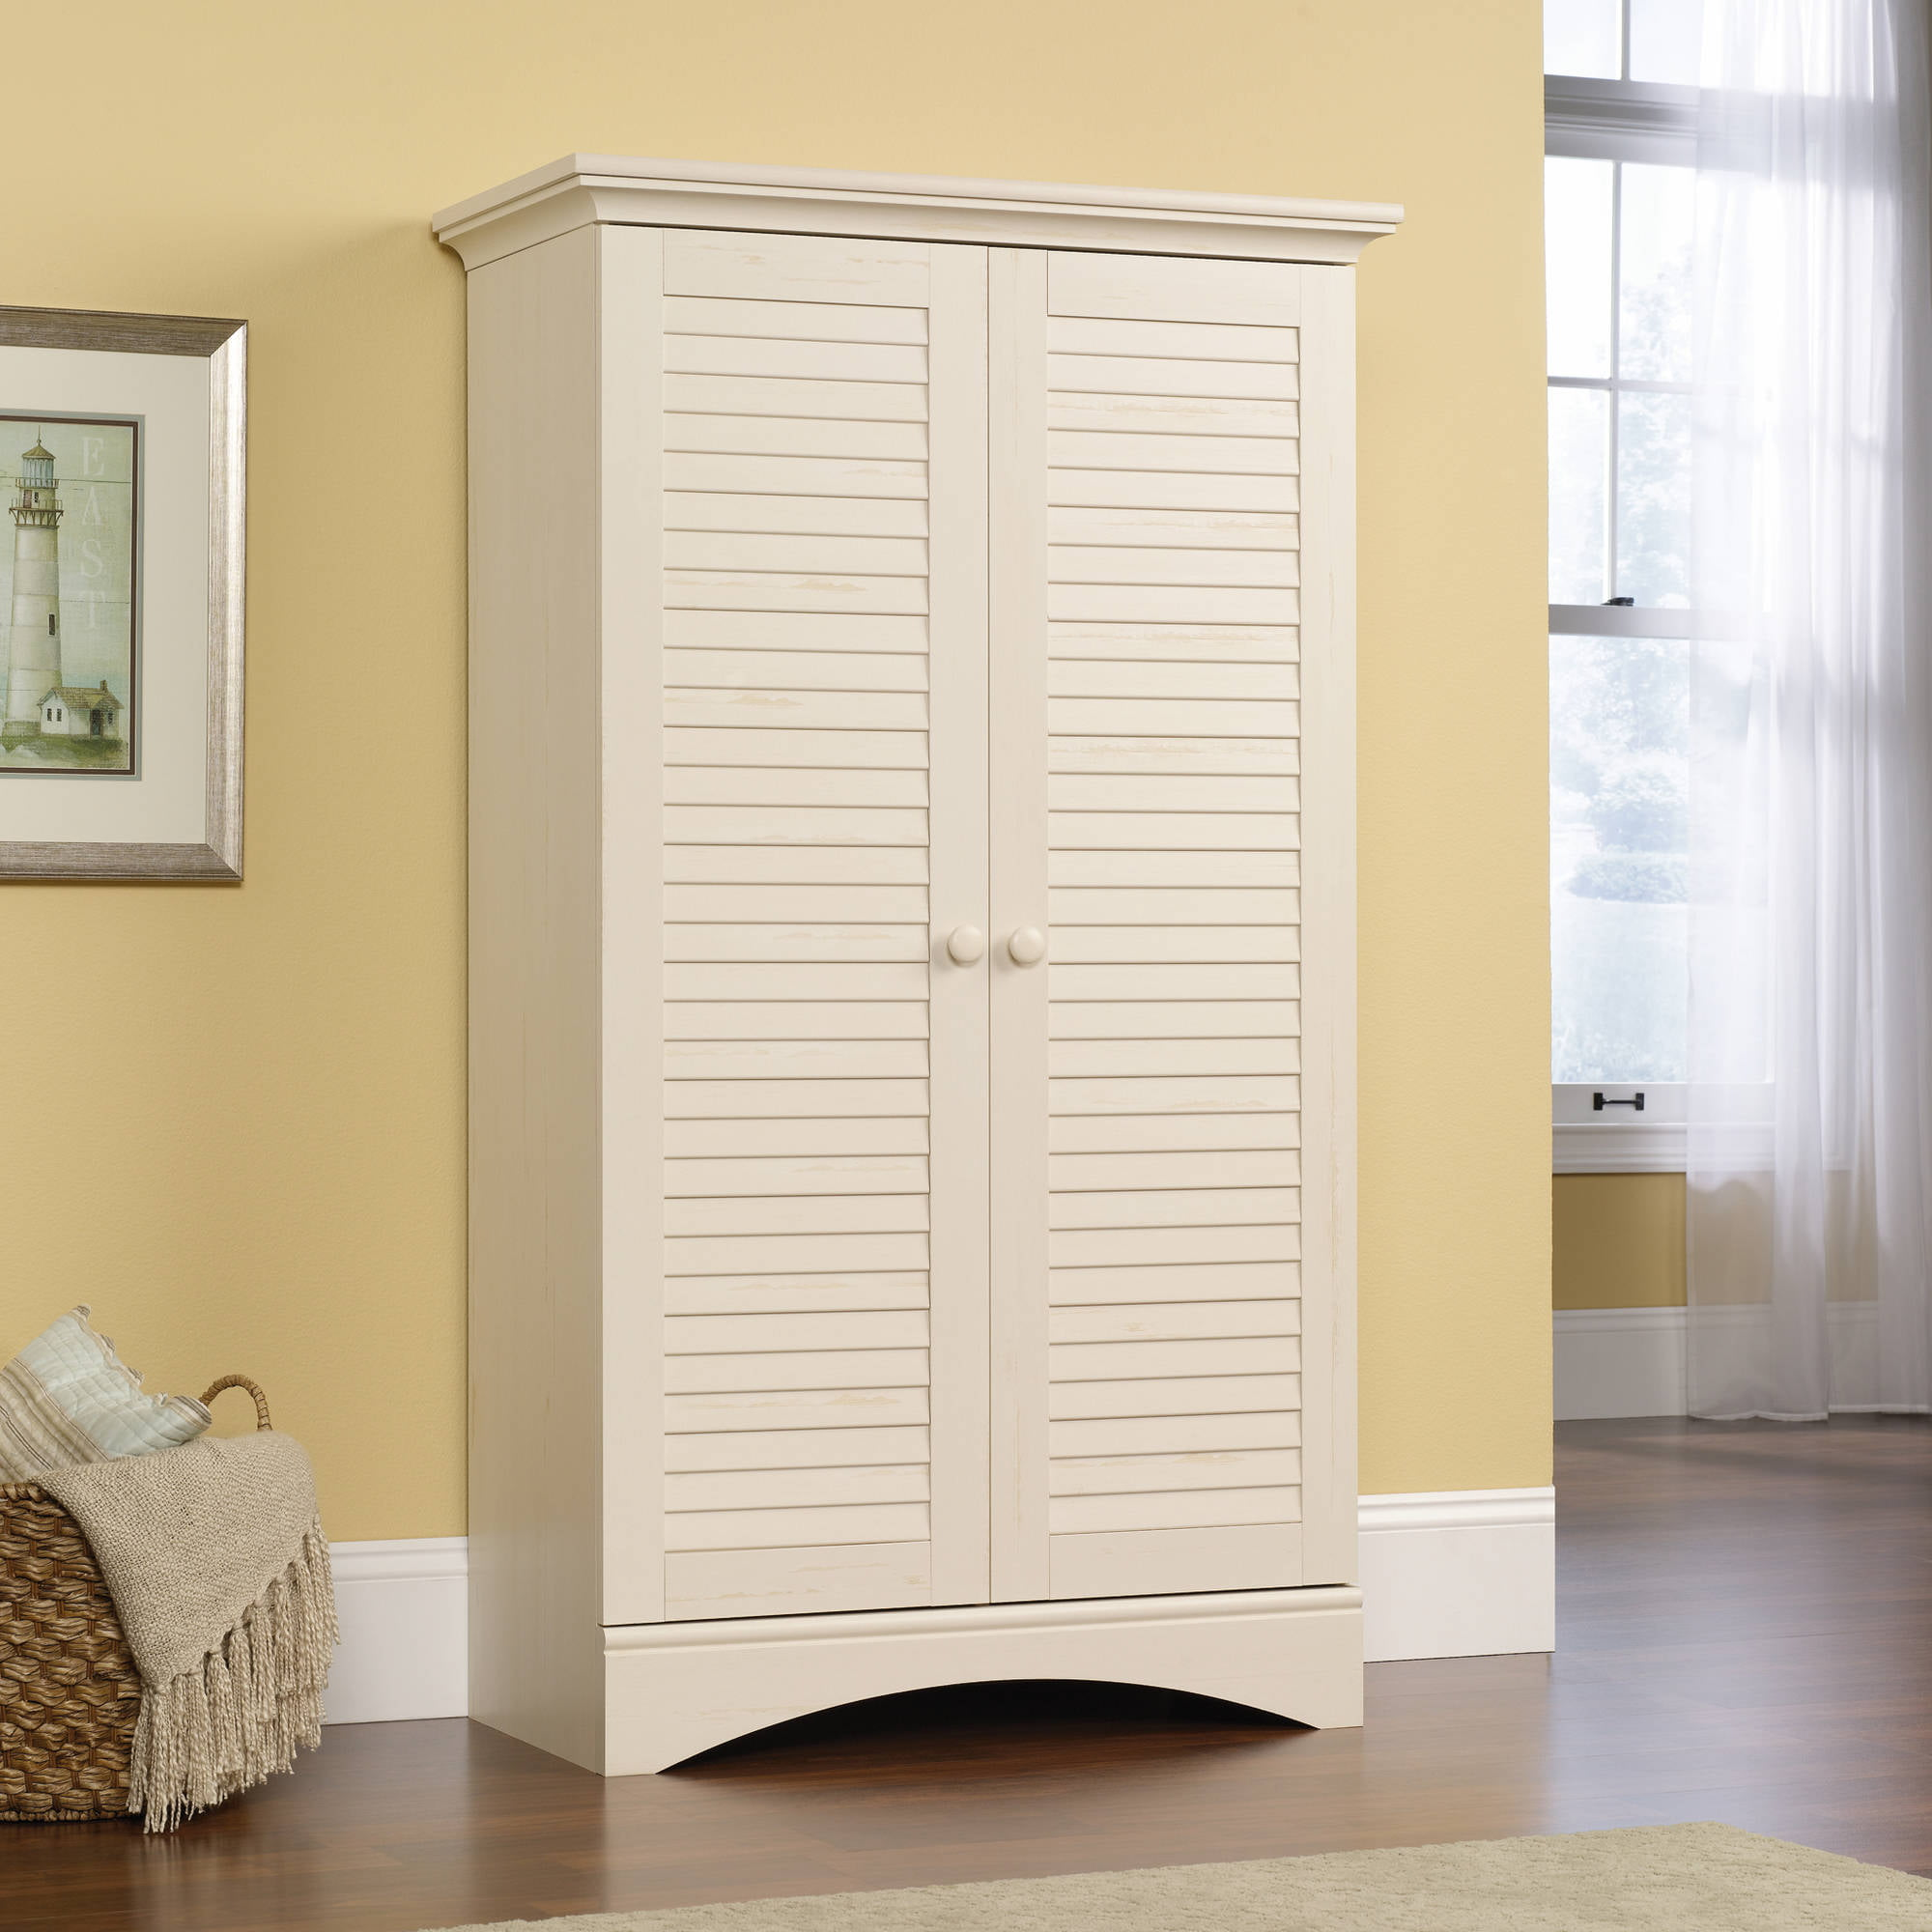 sauder harbor view storage cabinet multiple colors walmartcom - Walmart Bathroom Storage